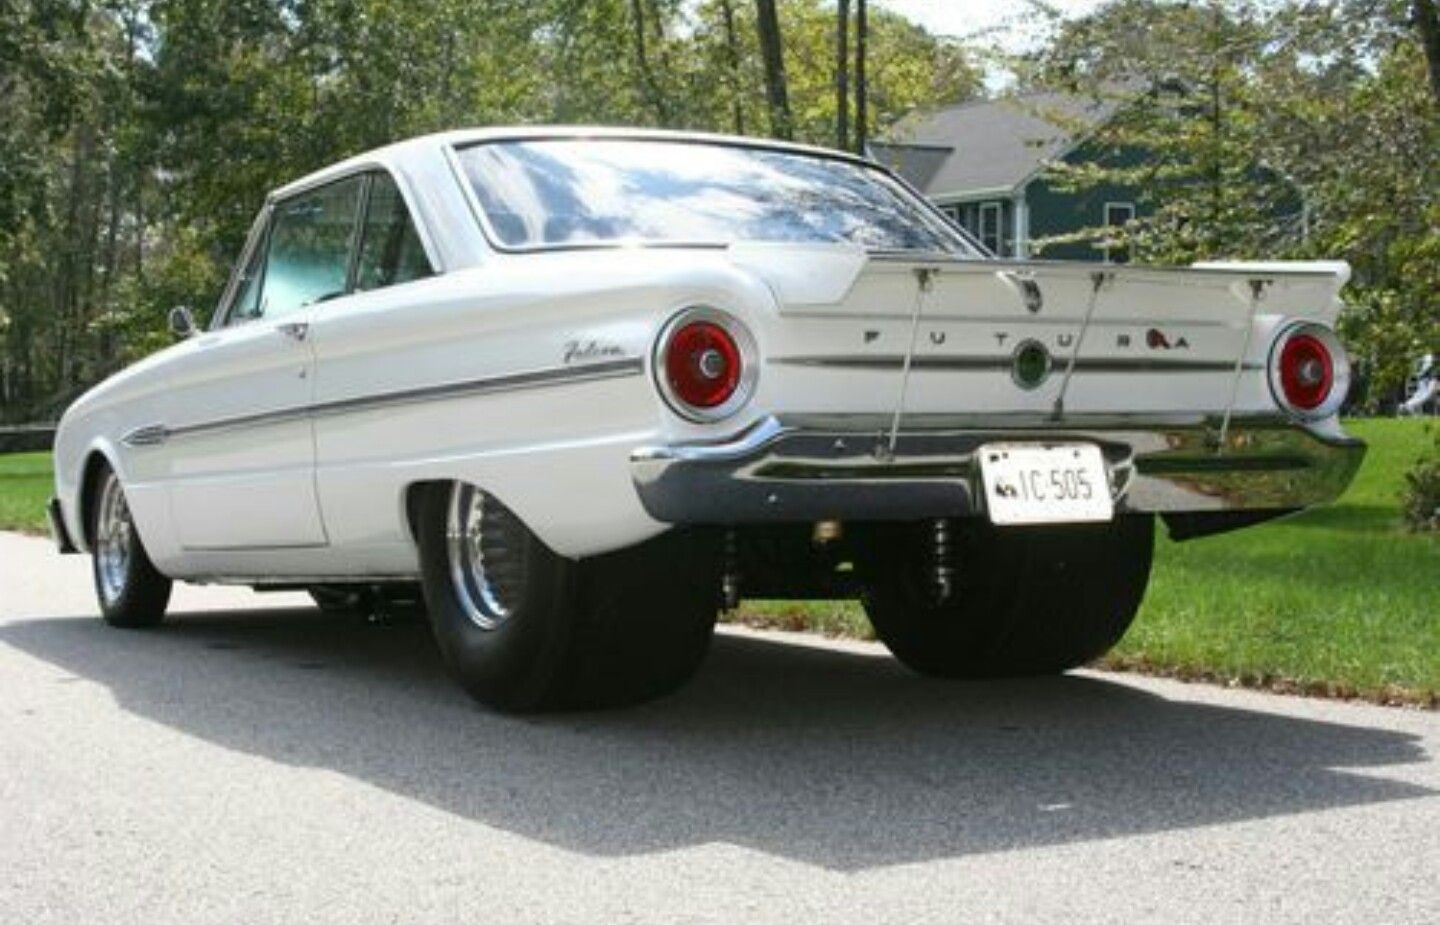 1961 ford falcon for sale racingjunk classifieds - Pro Street Falcon 26 Thousand Results Found On Yandex Images Go Pro Street Or No Street Pinterest Falcons Ford Falcon And Ford